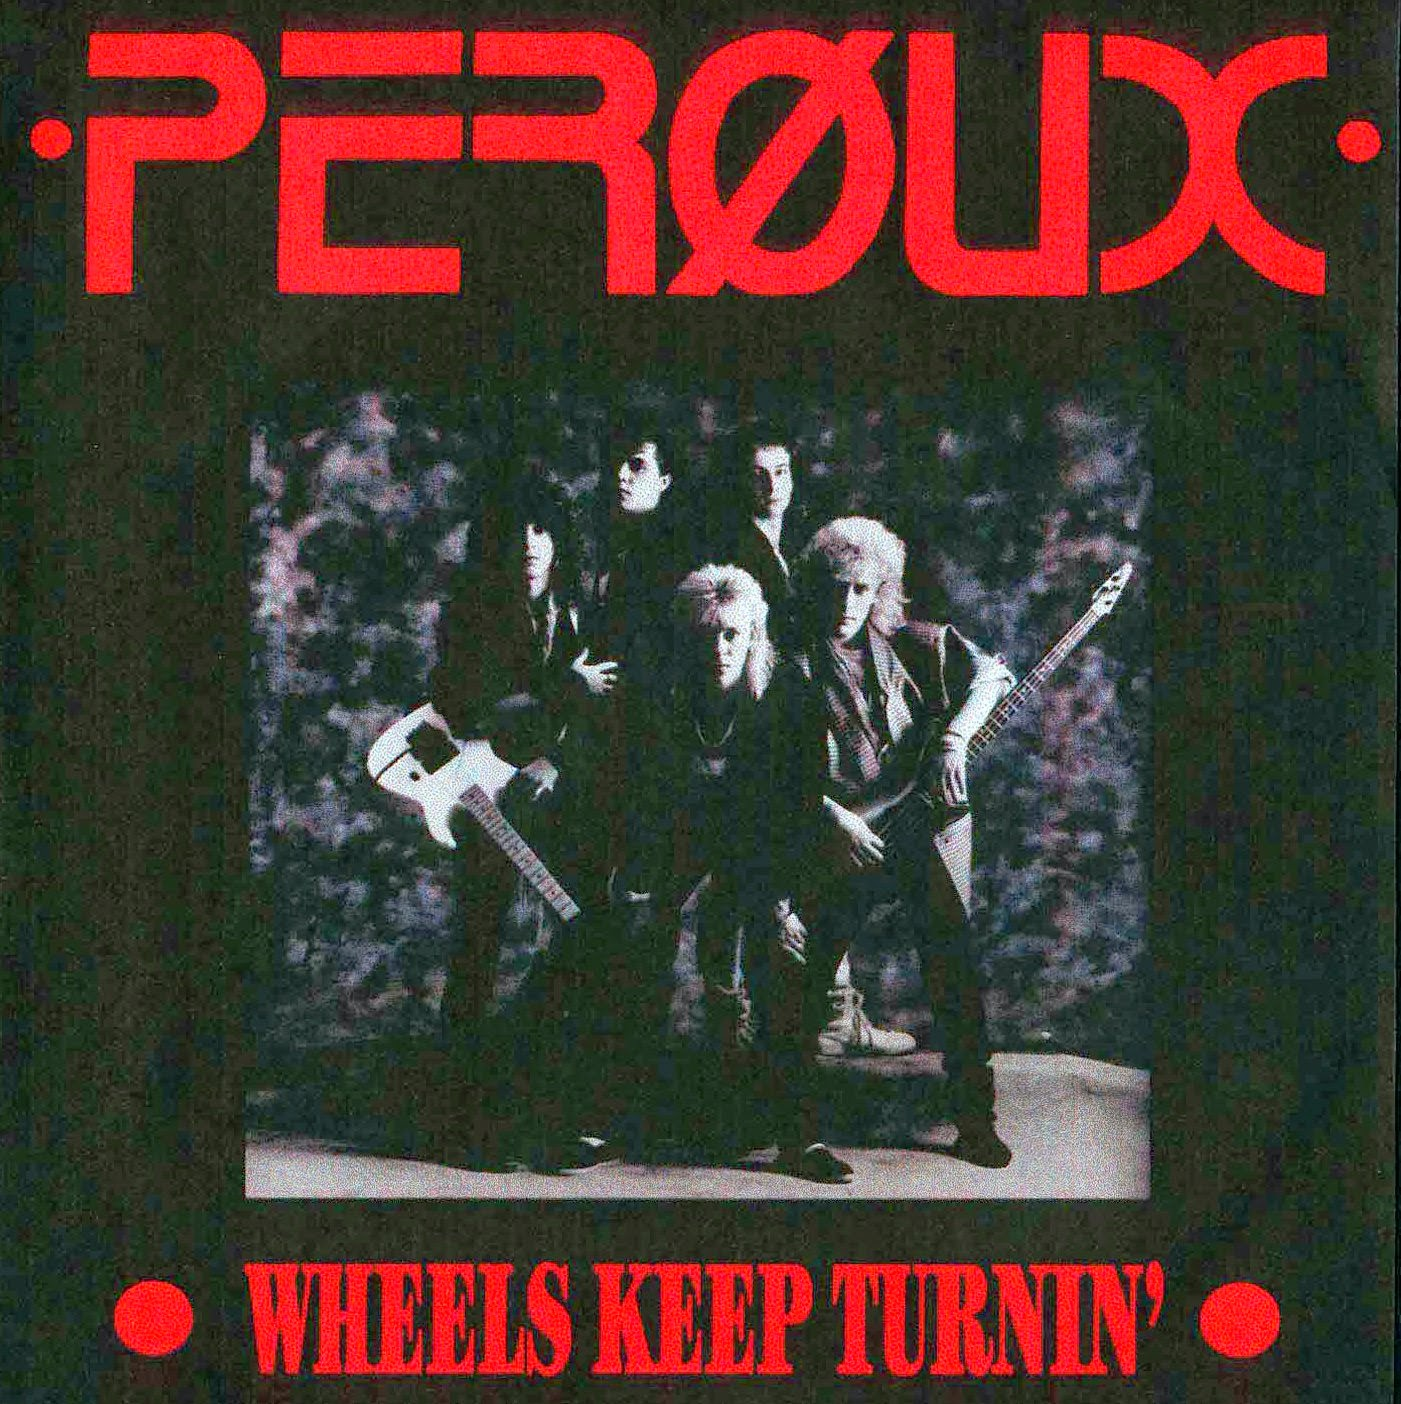 Peroux Wheels keep turning 1988 aor melodic rock